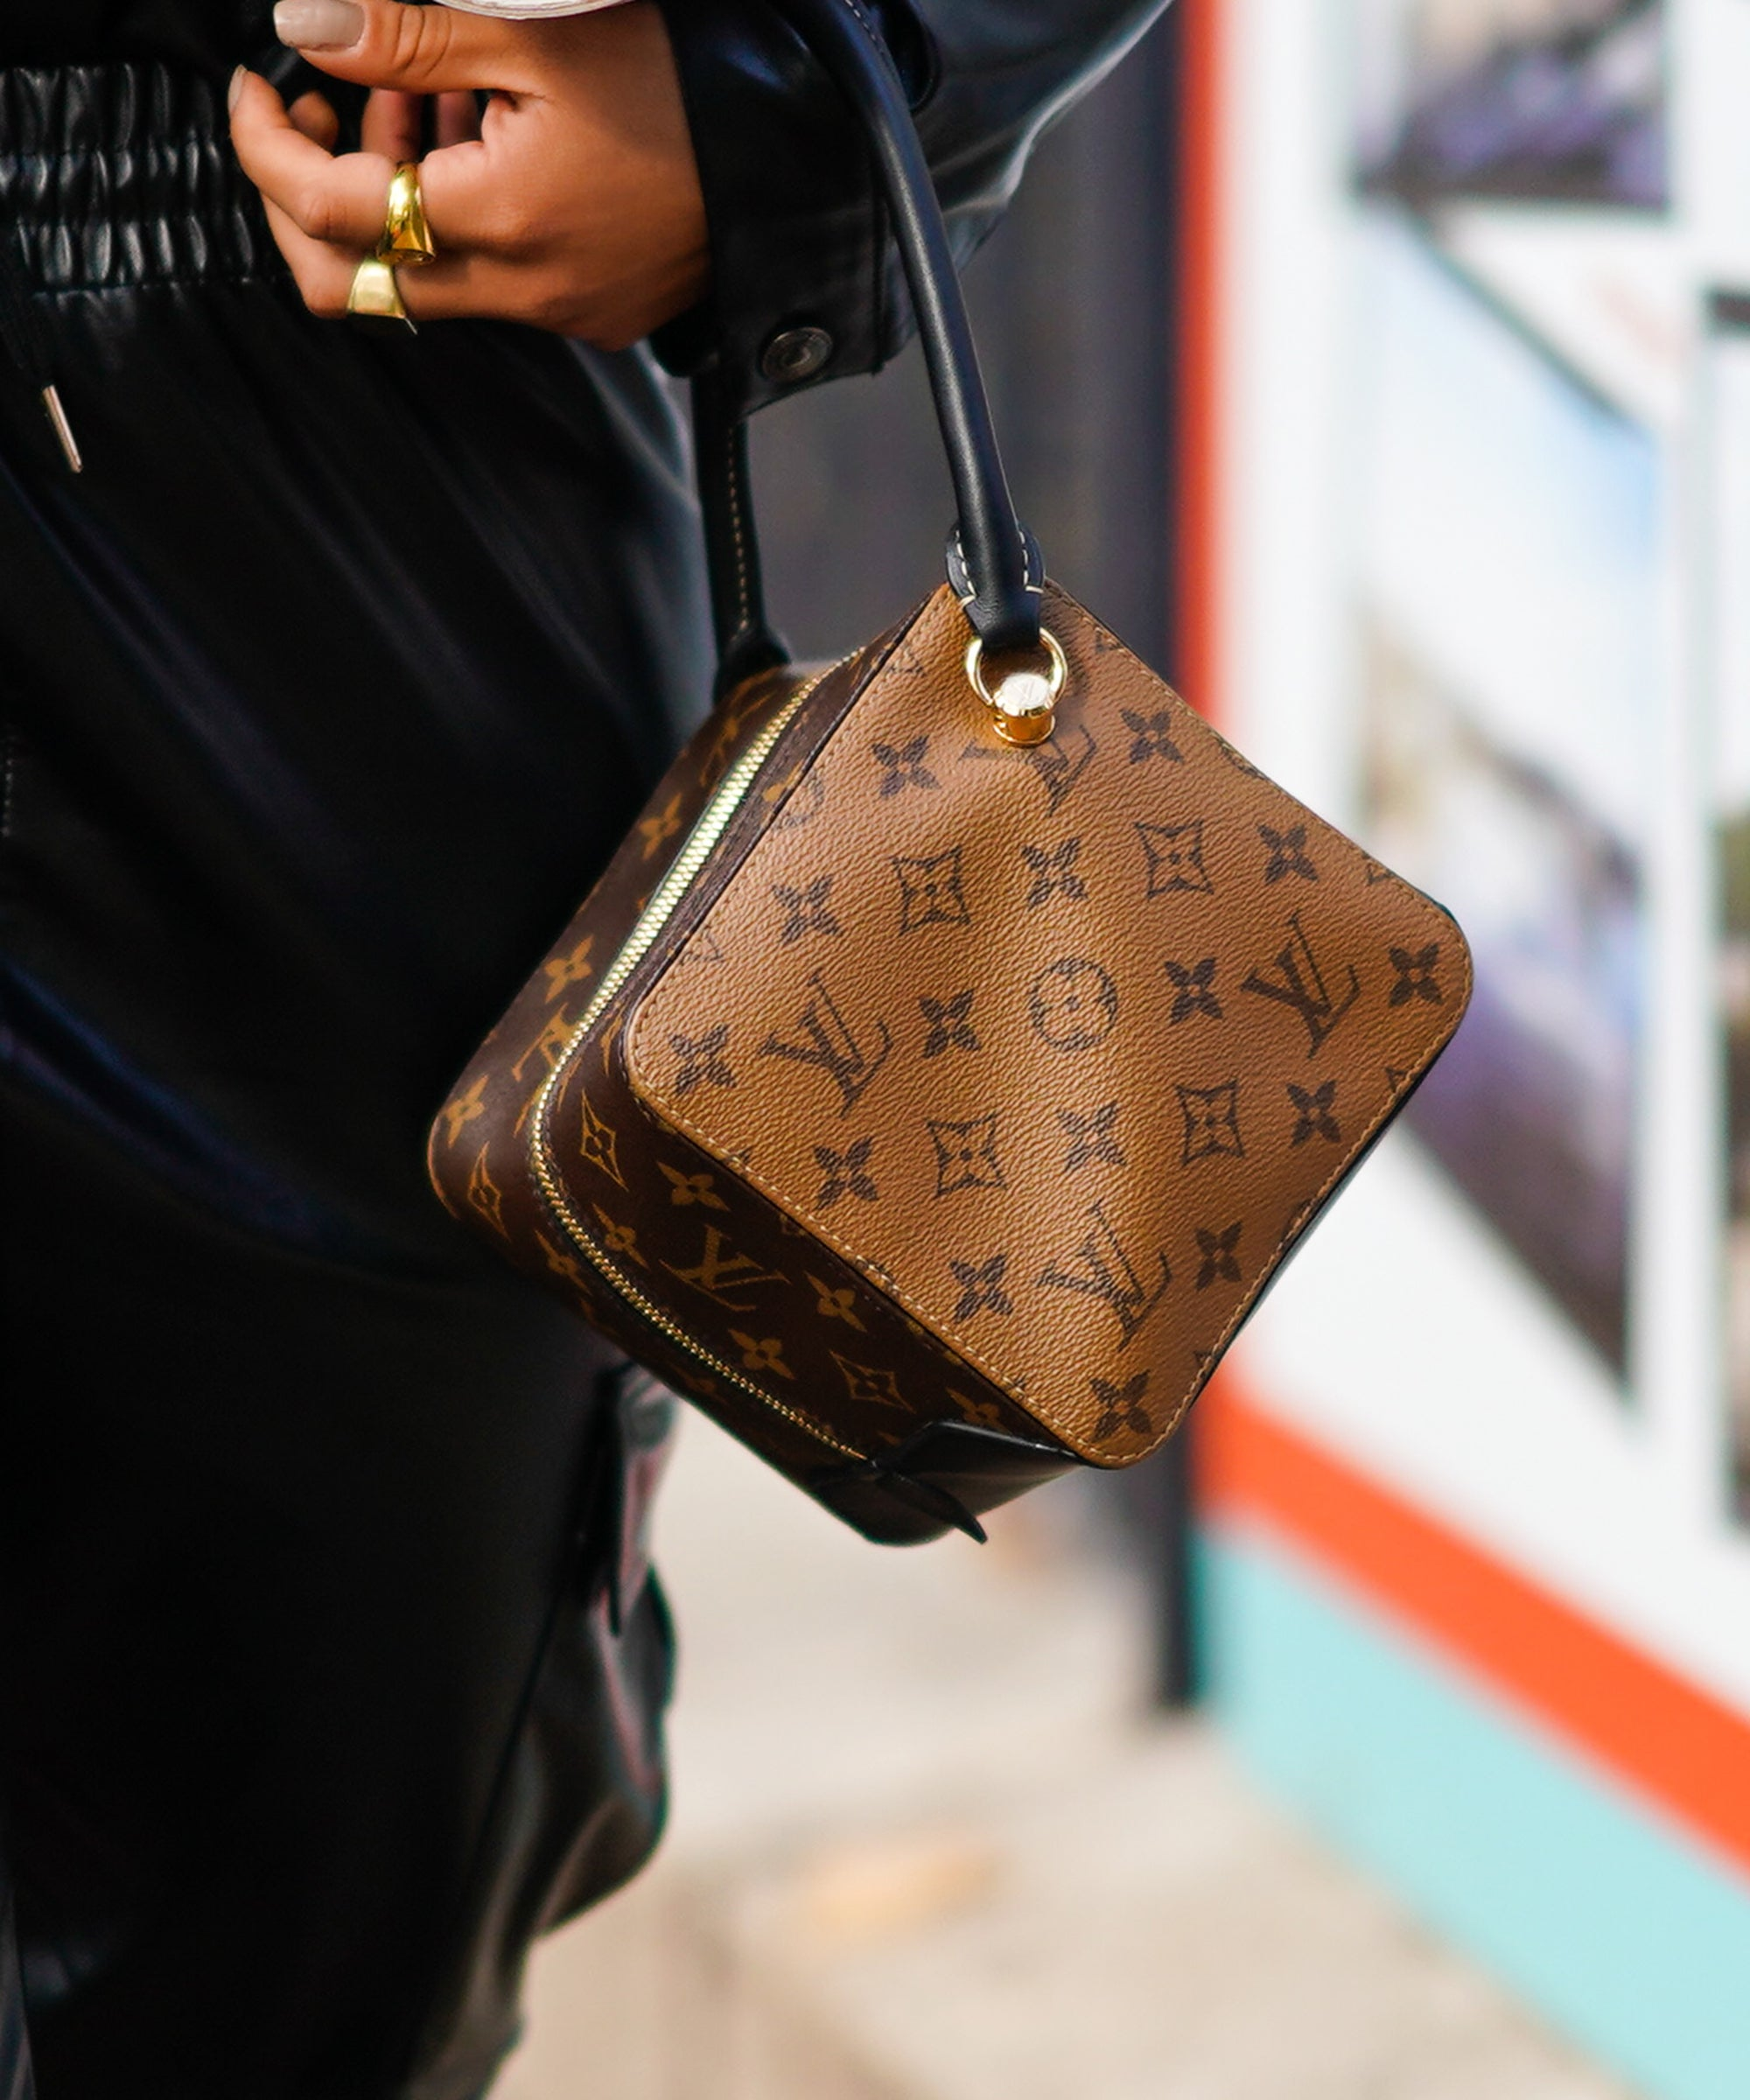 """Louis Vuitton Invites Trump To Its Factory: """"I'm Not Here To Judge Policies"""""""